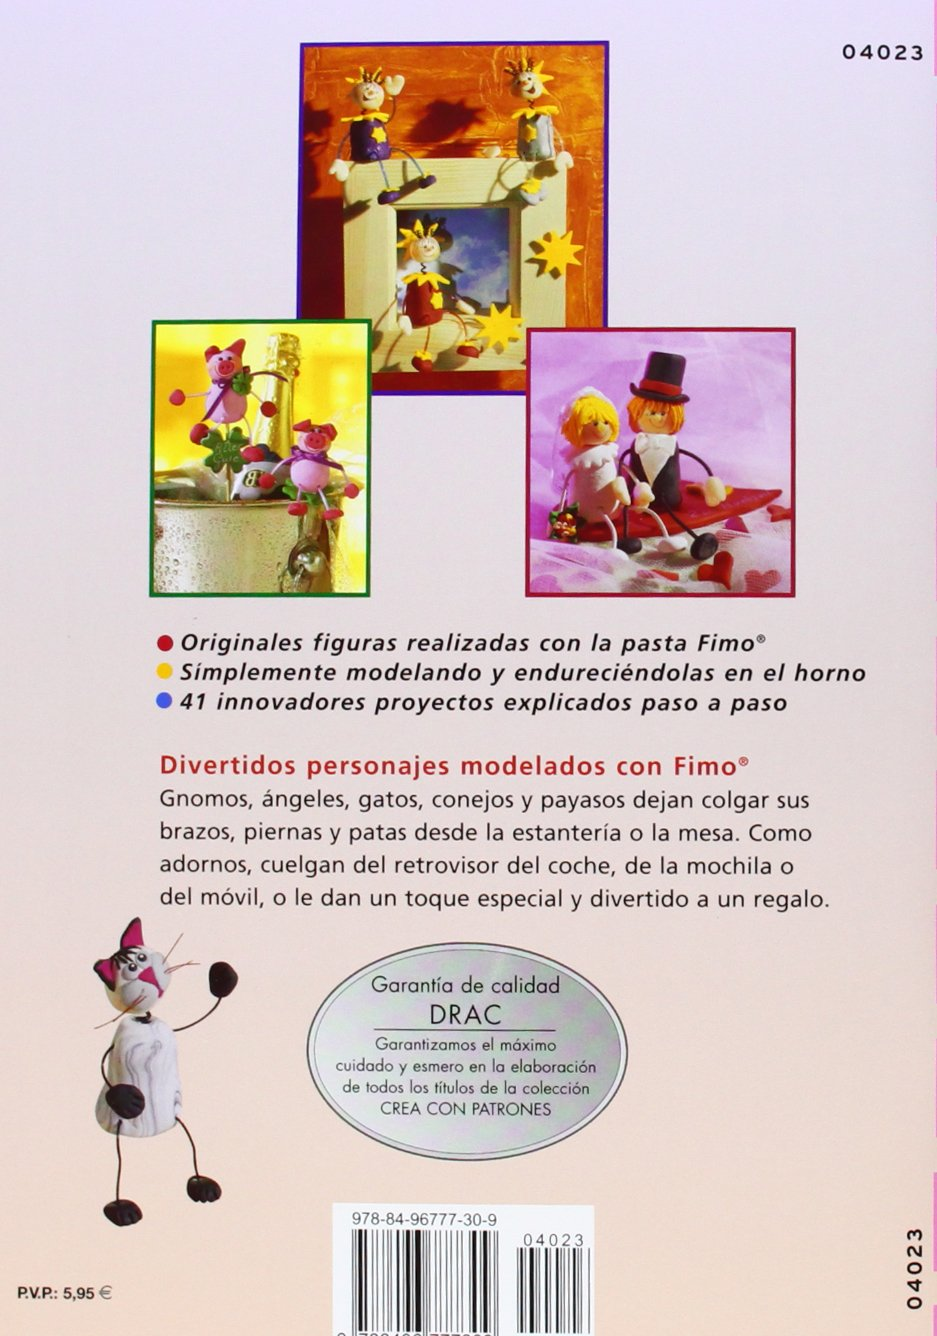 ANIMALES PAYASOS COCINEROS NOVIOS DUENDES ANGELITOS: GUDRUN HETTINGER: 9788496777309: Amazon.com: Books